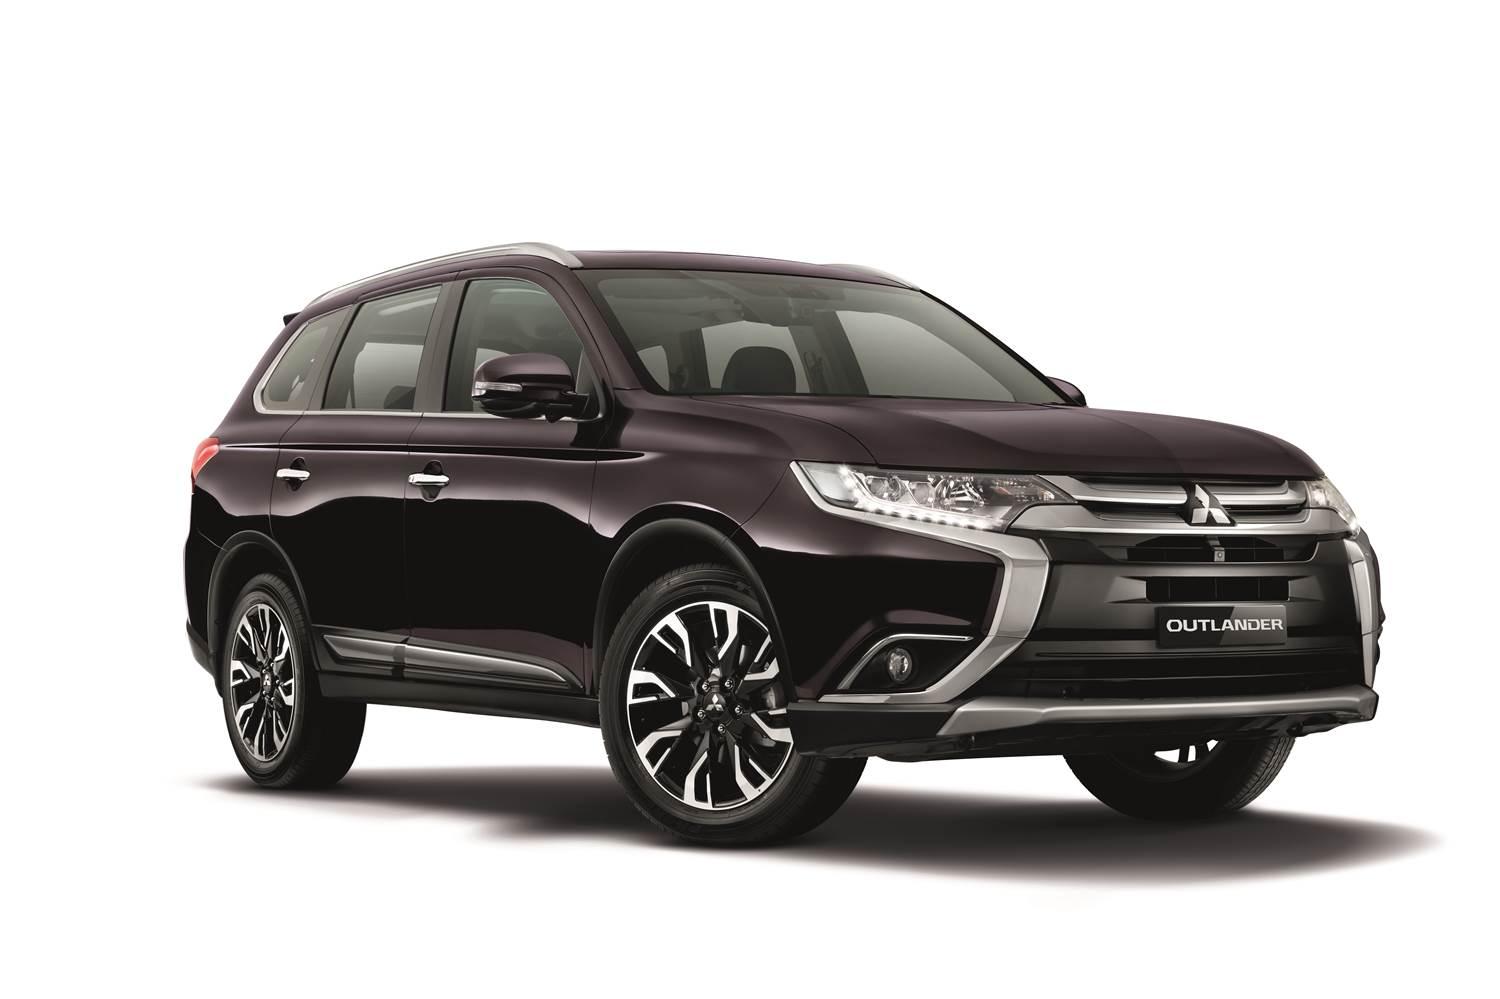 mitsubishi motors malaysia makes available outlander 2 4l suv. Black Bedroom Furniture Sets. Home Design Ideas